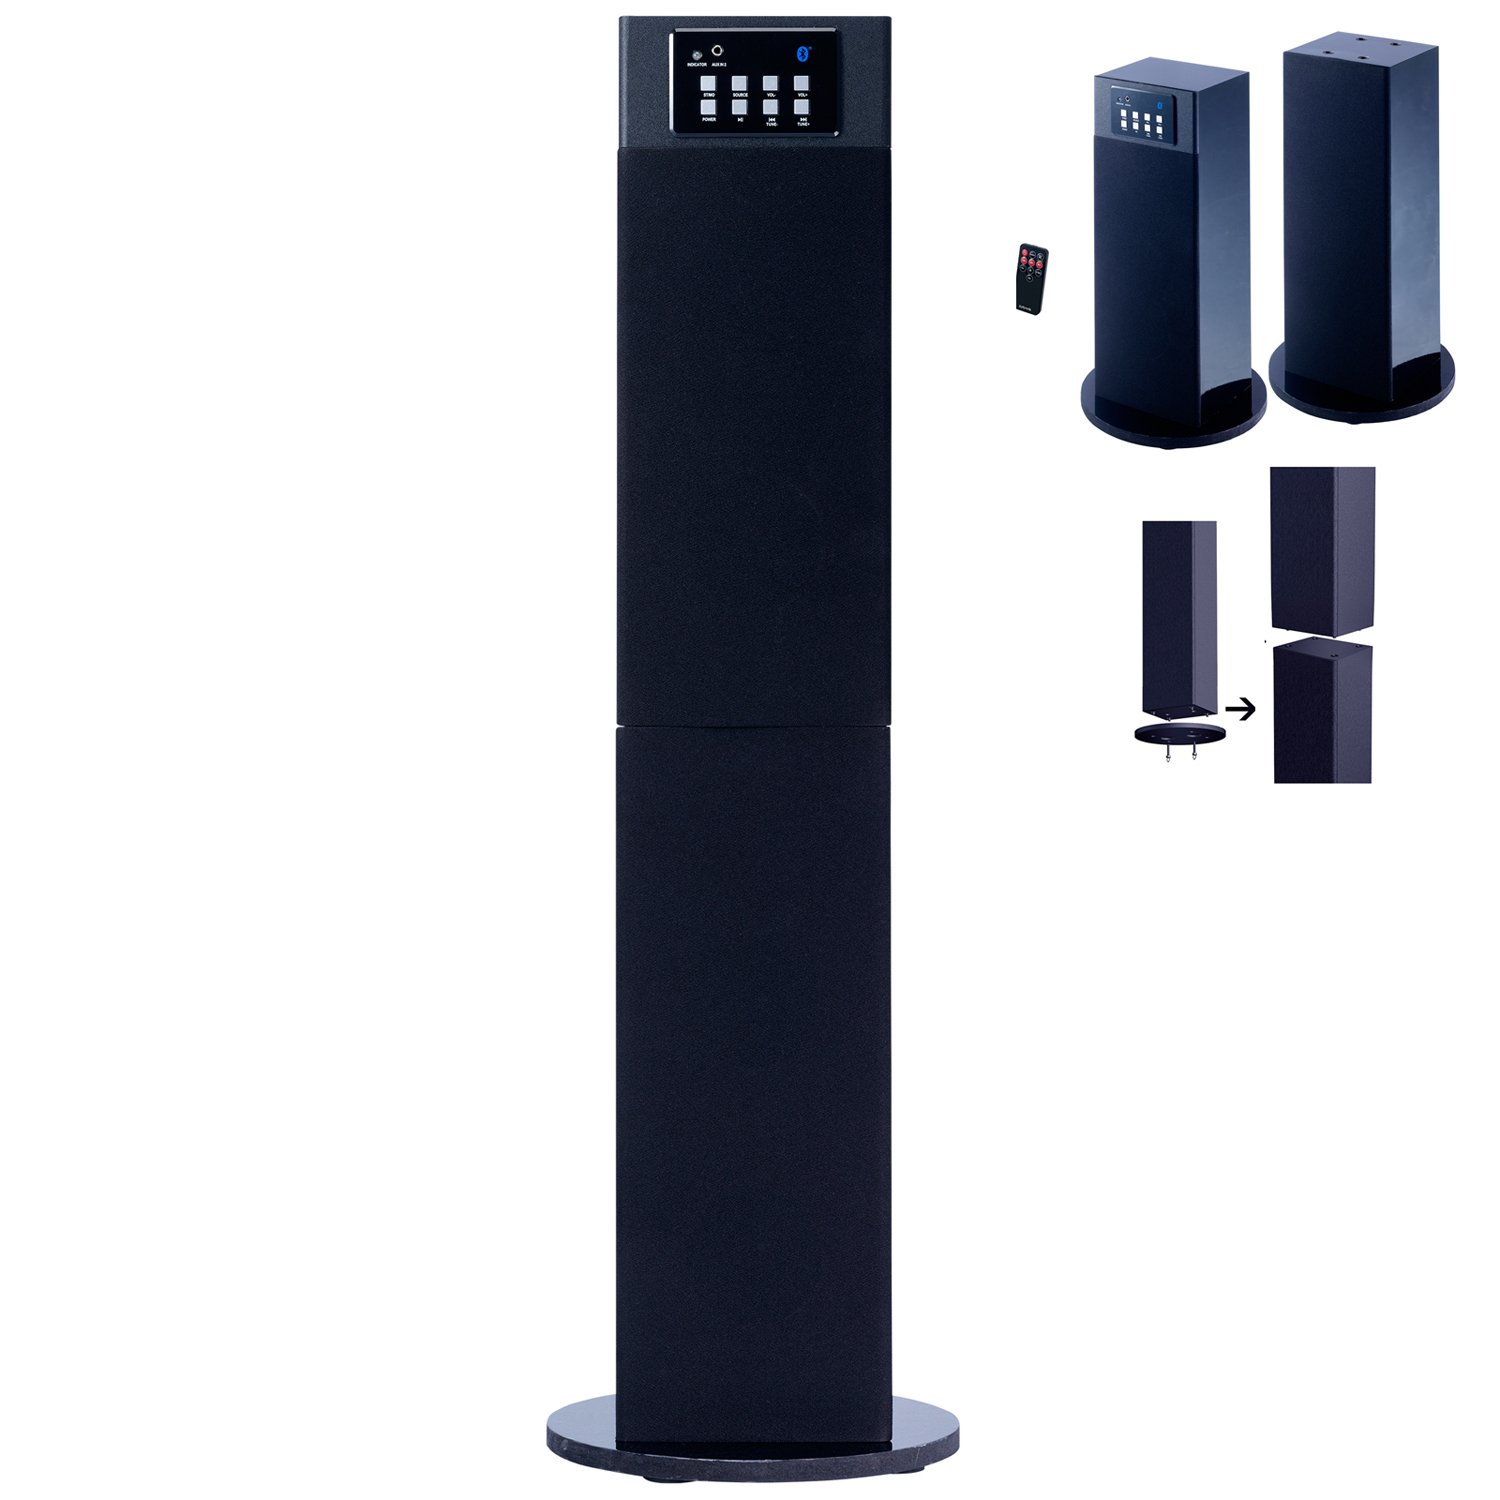 home theater tower speakers. amazon.com: craig electronics cht914c stereo home theater/tower speaker system with bluetooth wireless technology: audio \u0026 theater tower speakers a